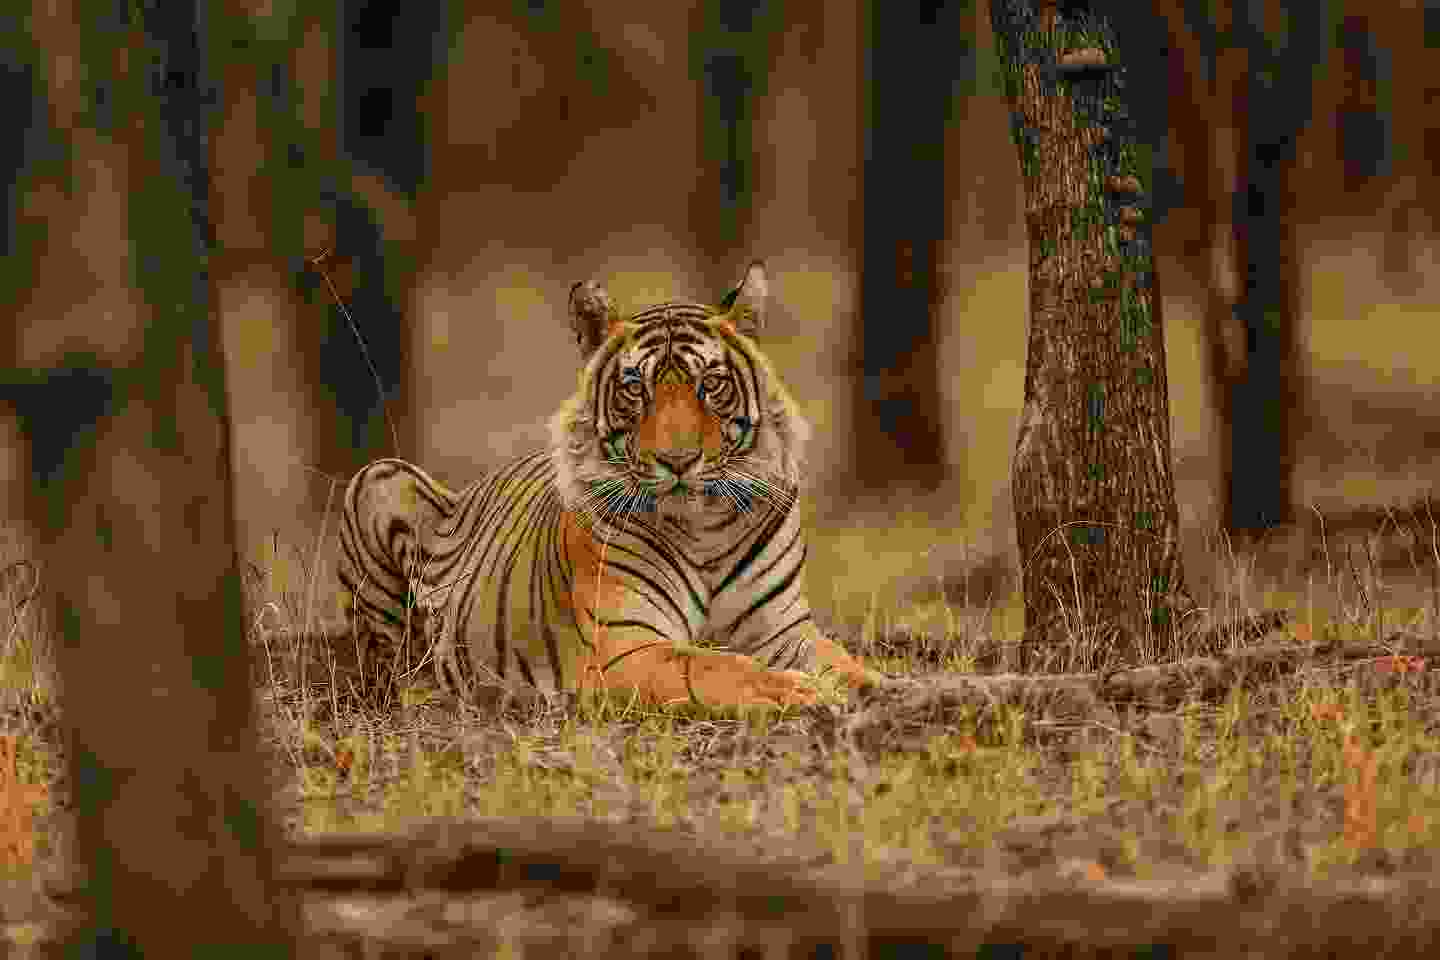 A tiger in India (Shutterstock)